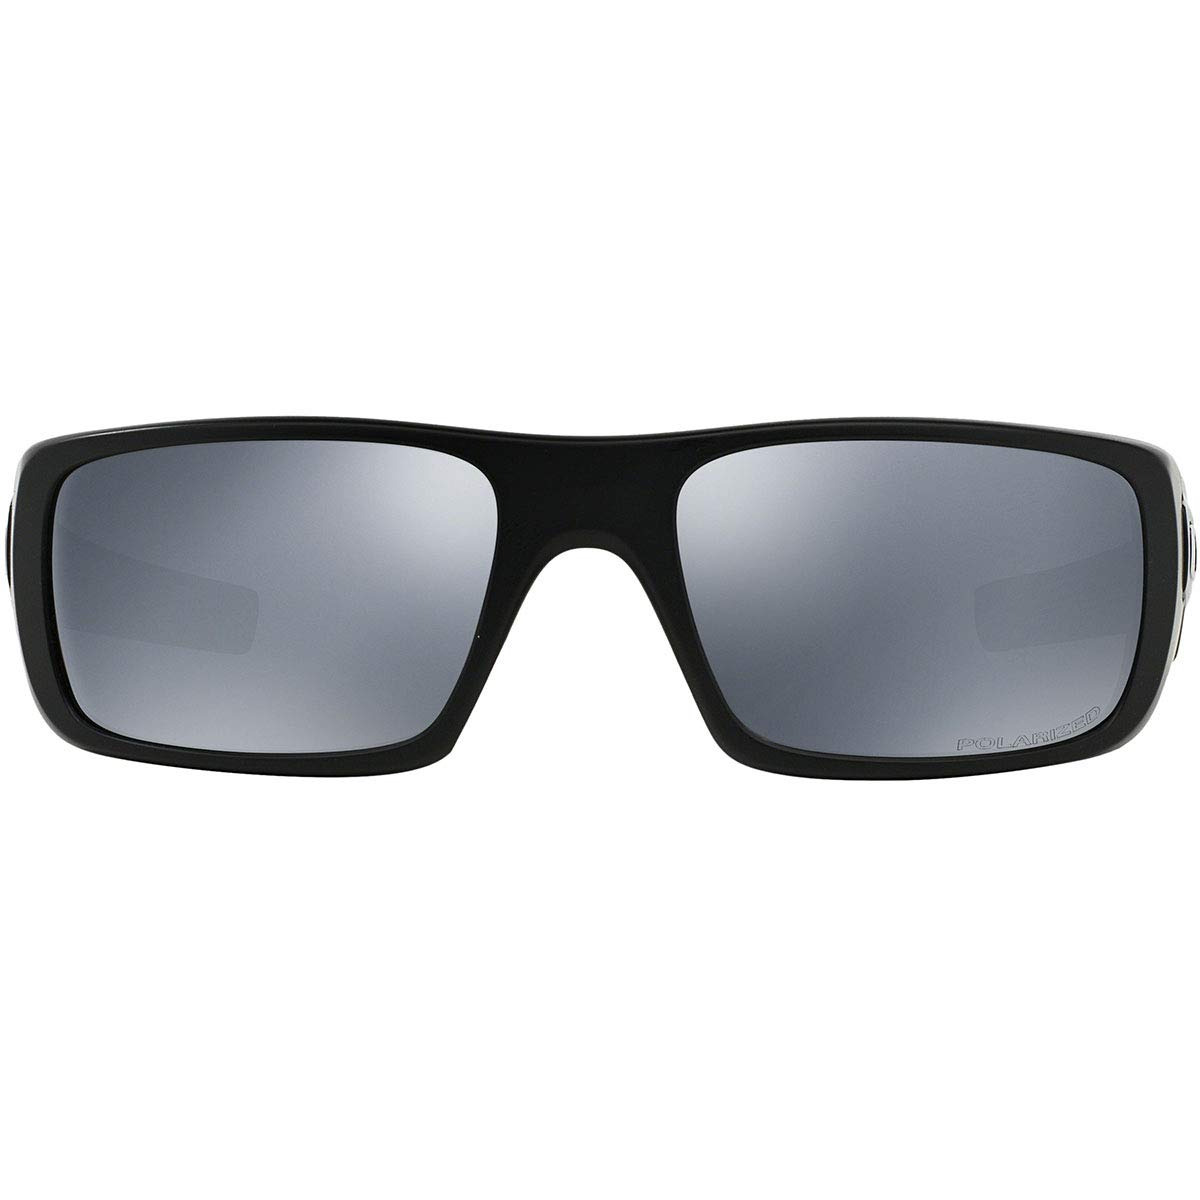 Oakley - Gafas para hombre, Matte Black Dark Bronze, TU: Amazon.es ...